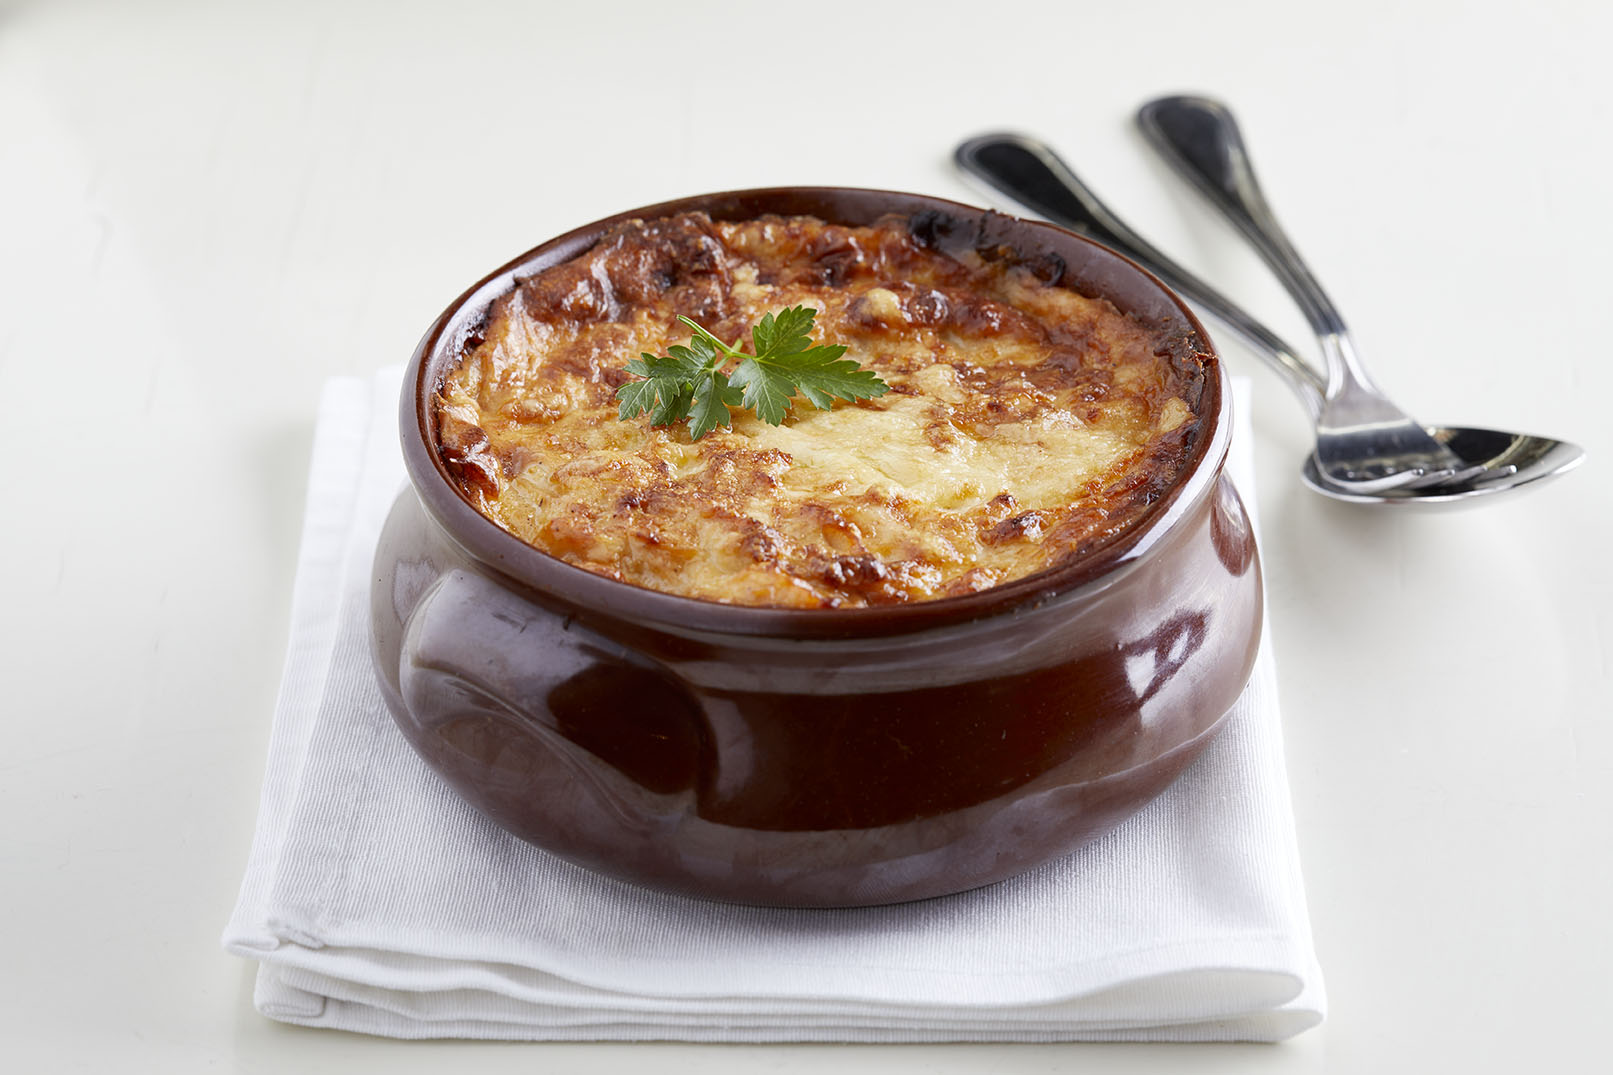 Moussaka(1) in a Clay Pot